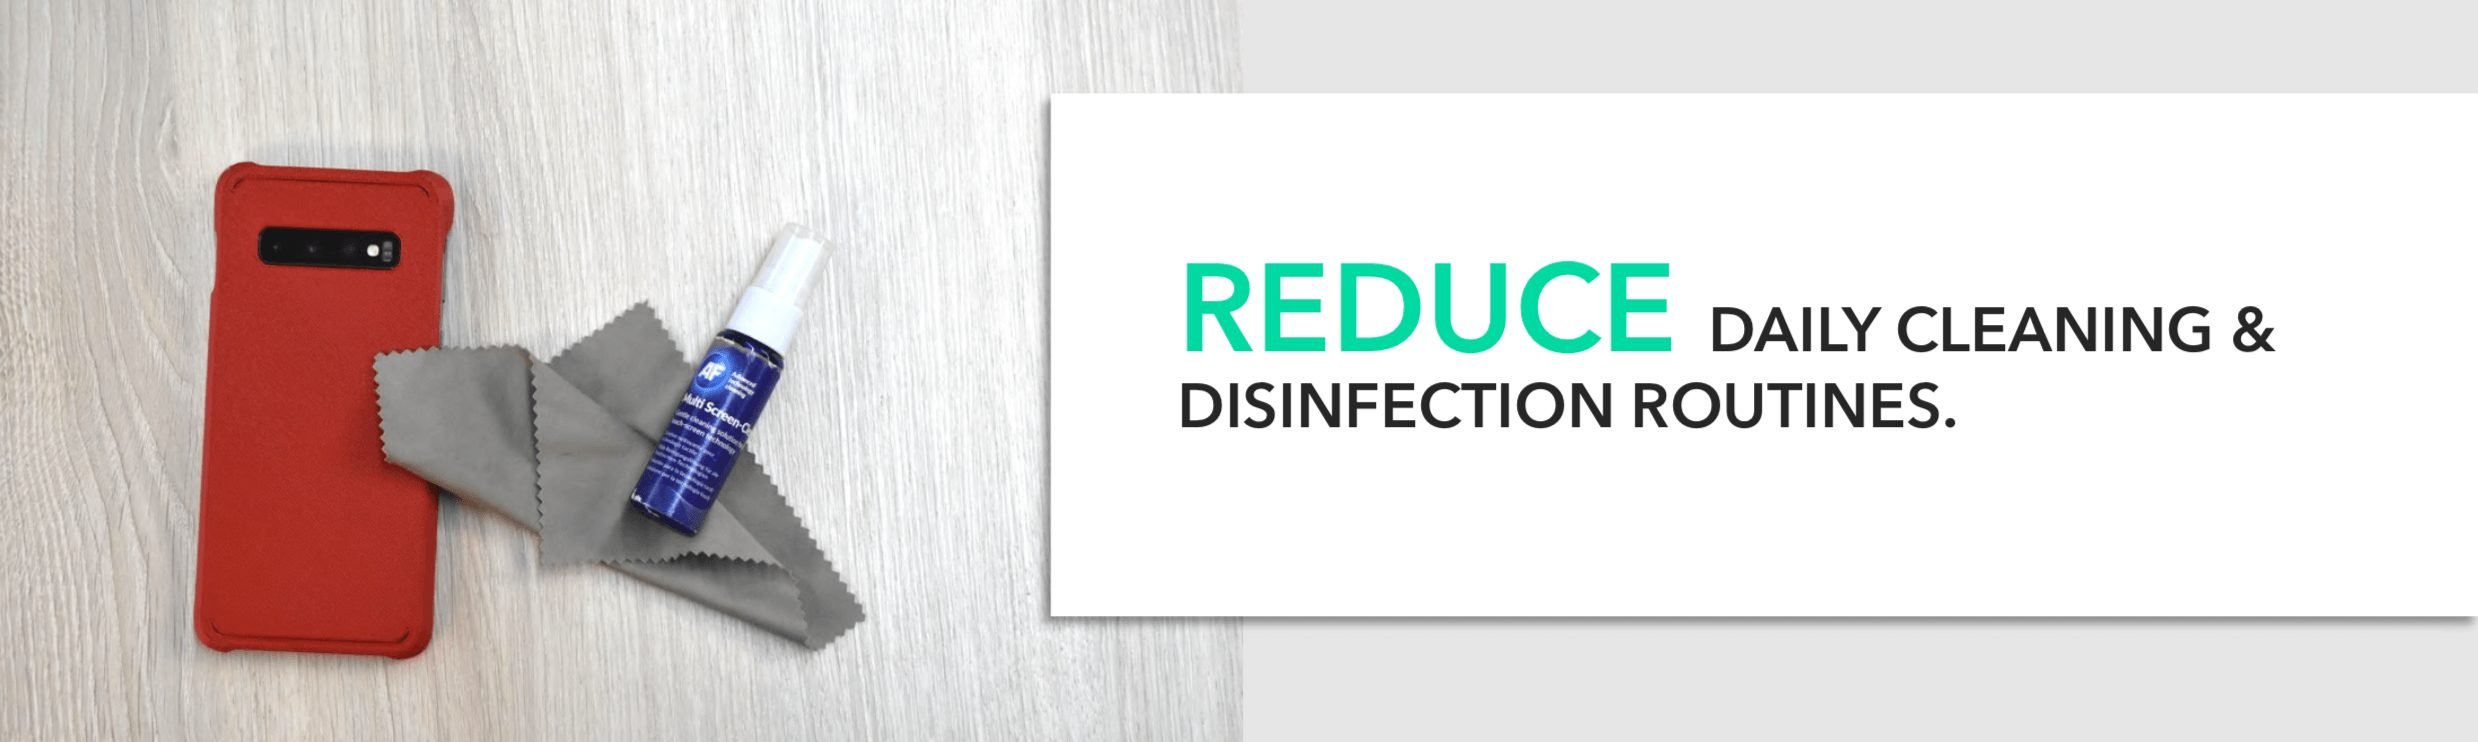 Reduce Daily Cleaning